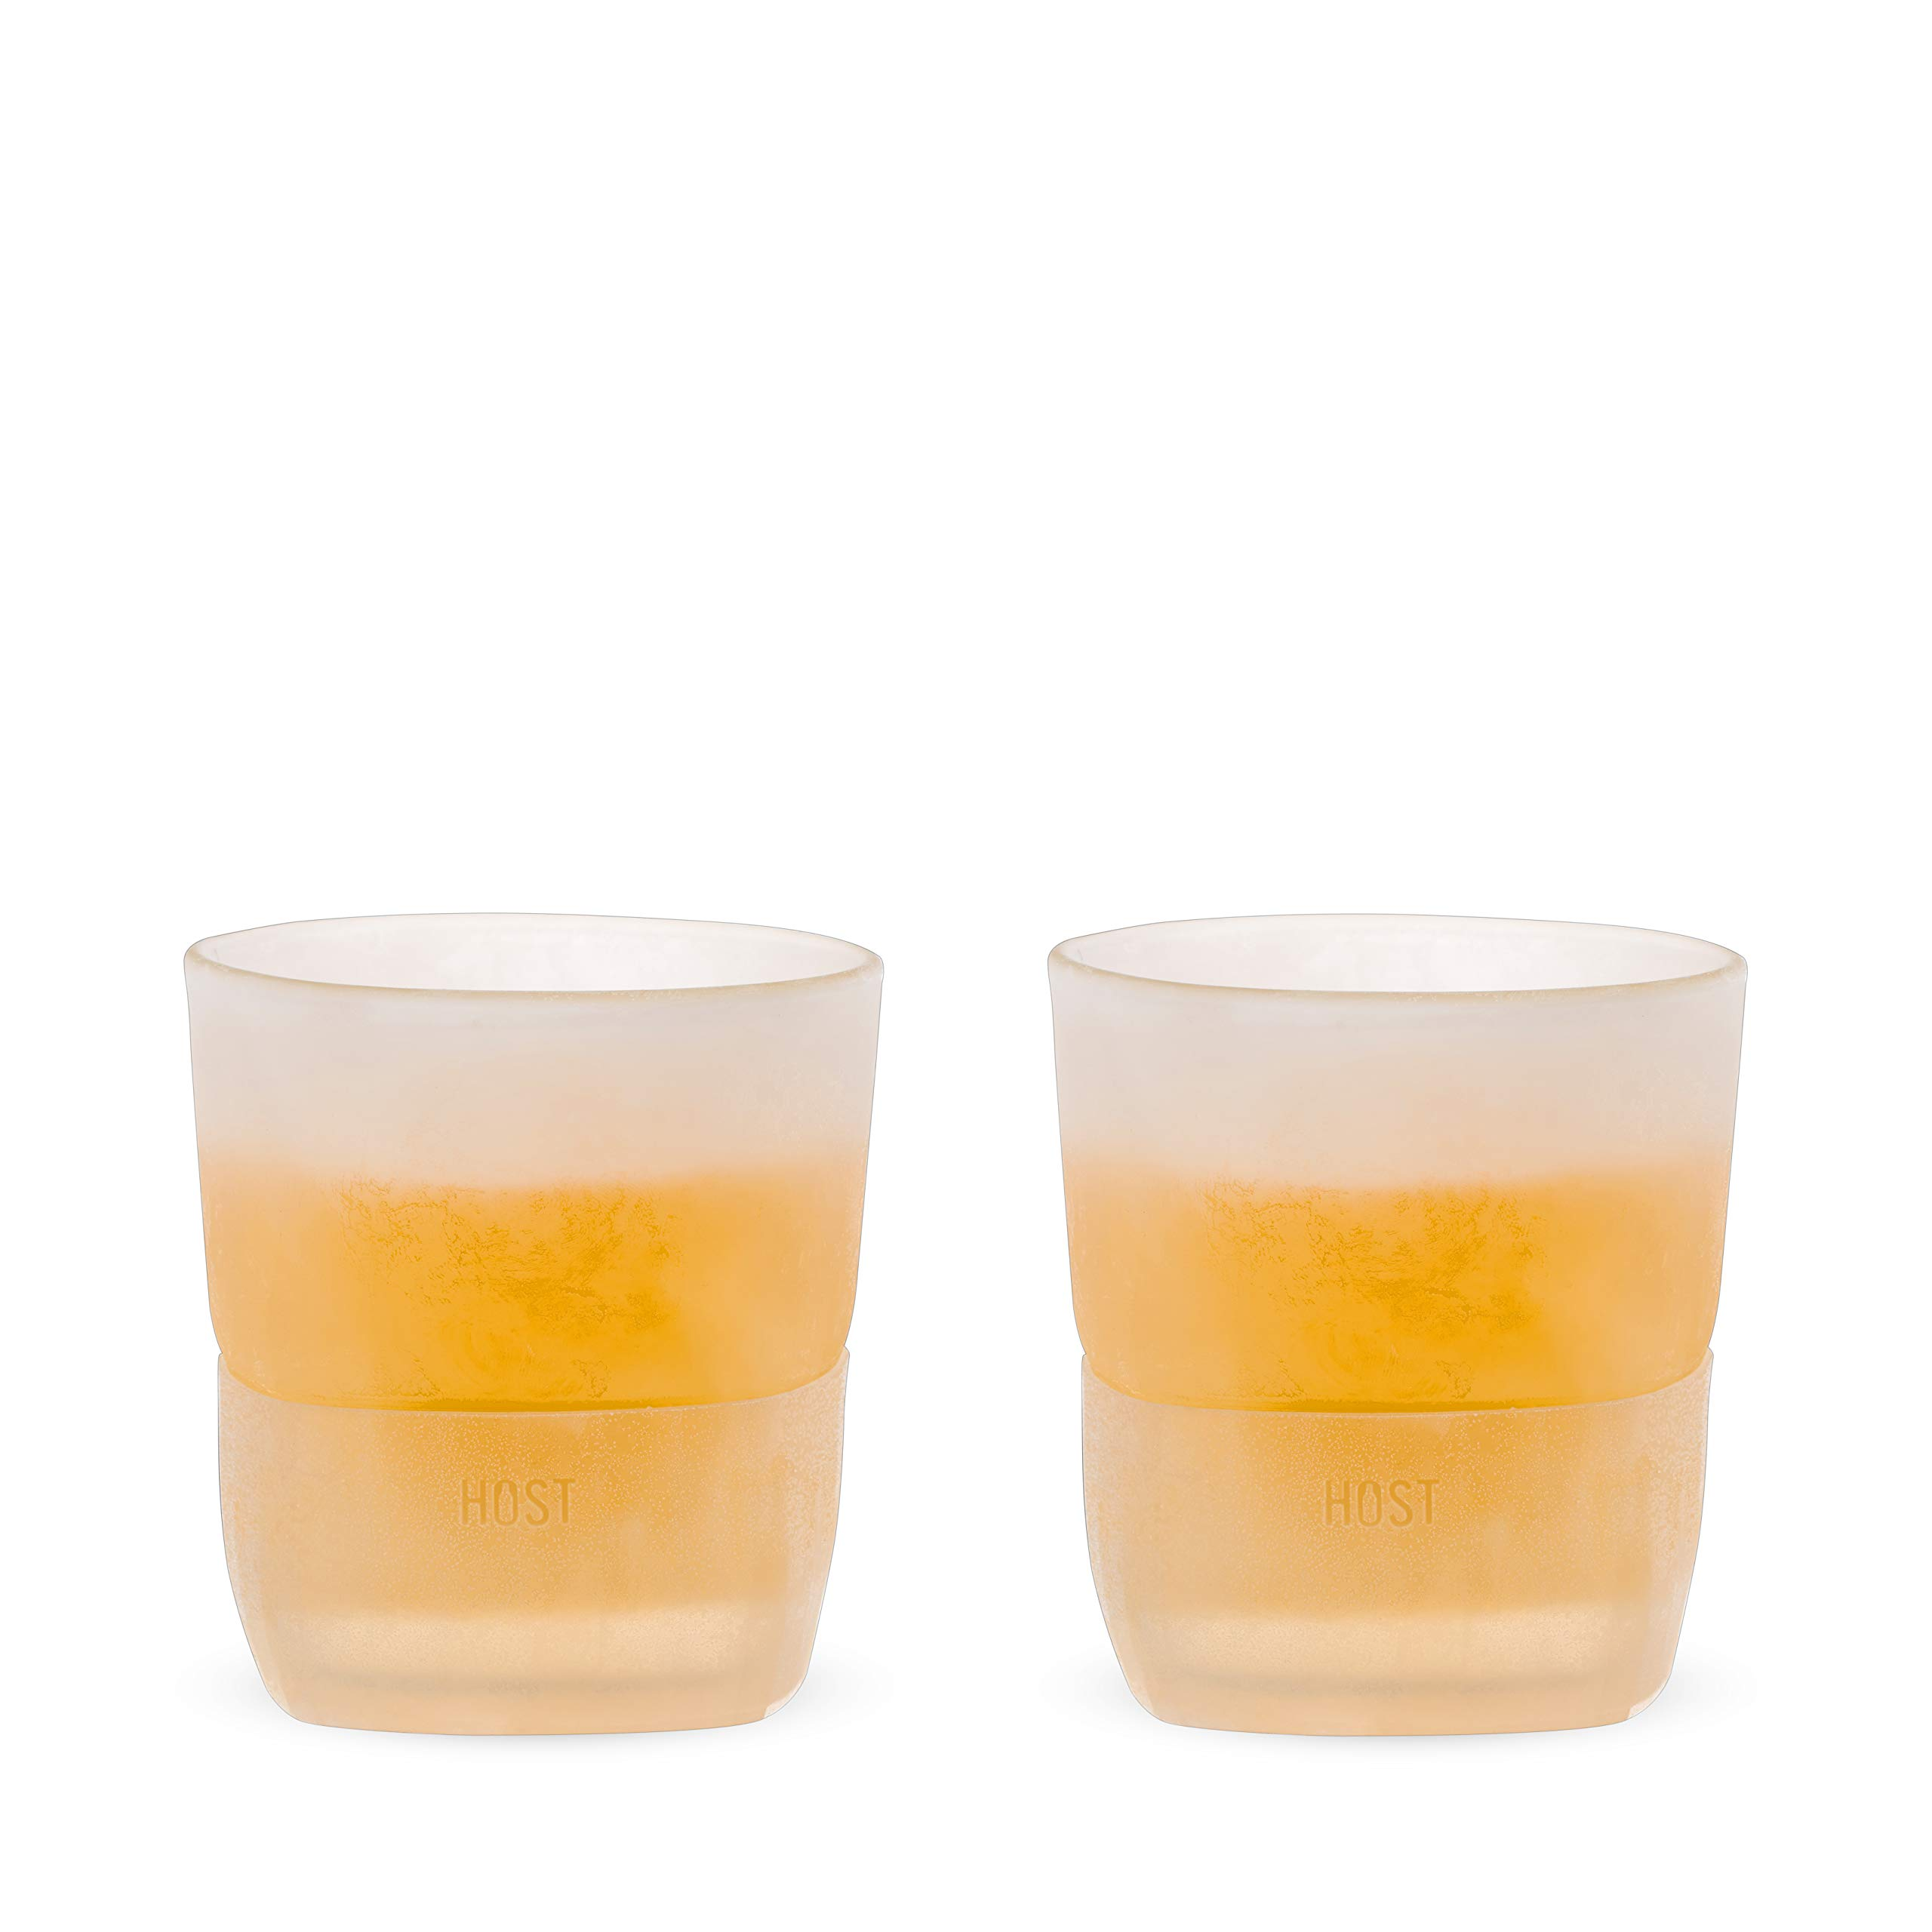 HOST 1744 Freeze Whiskey Glass, Set of 2, Clear by Host